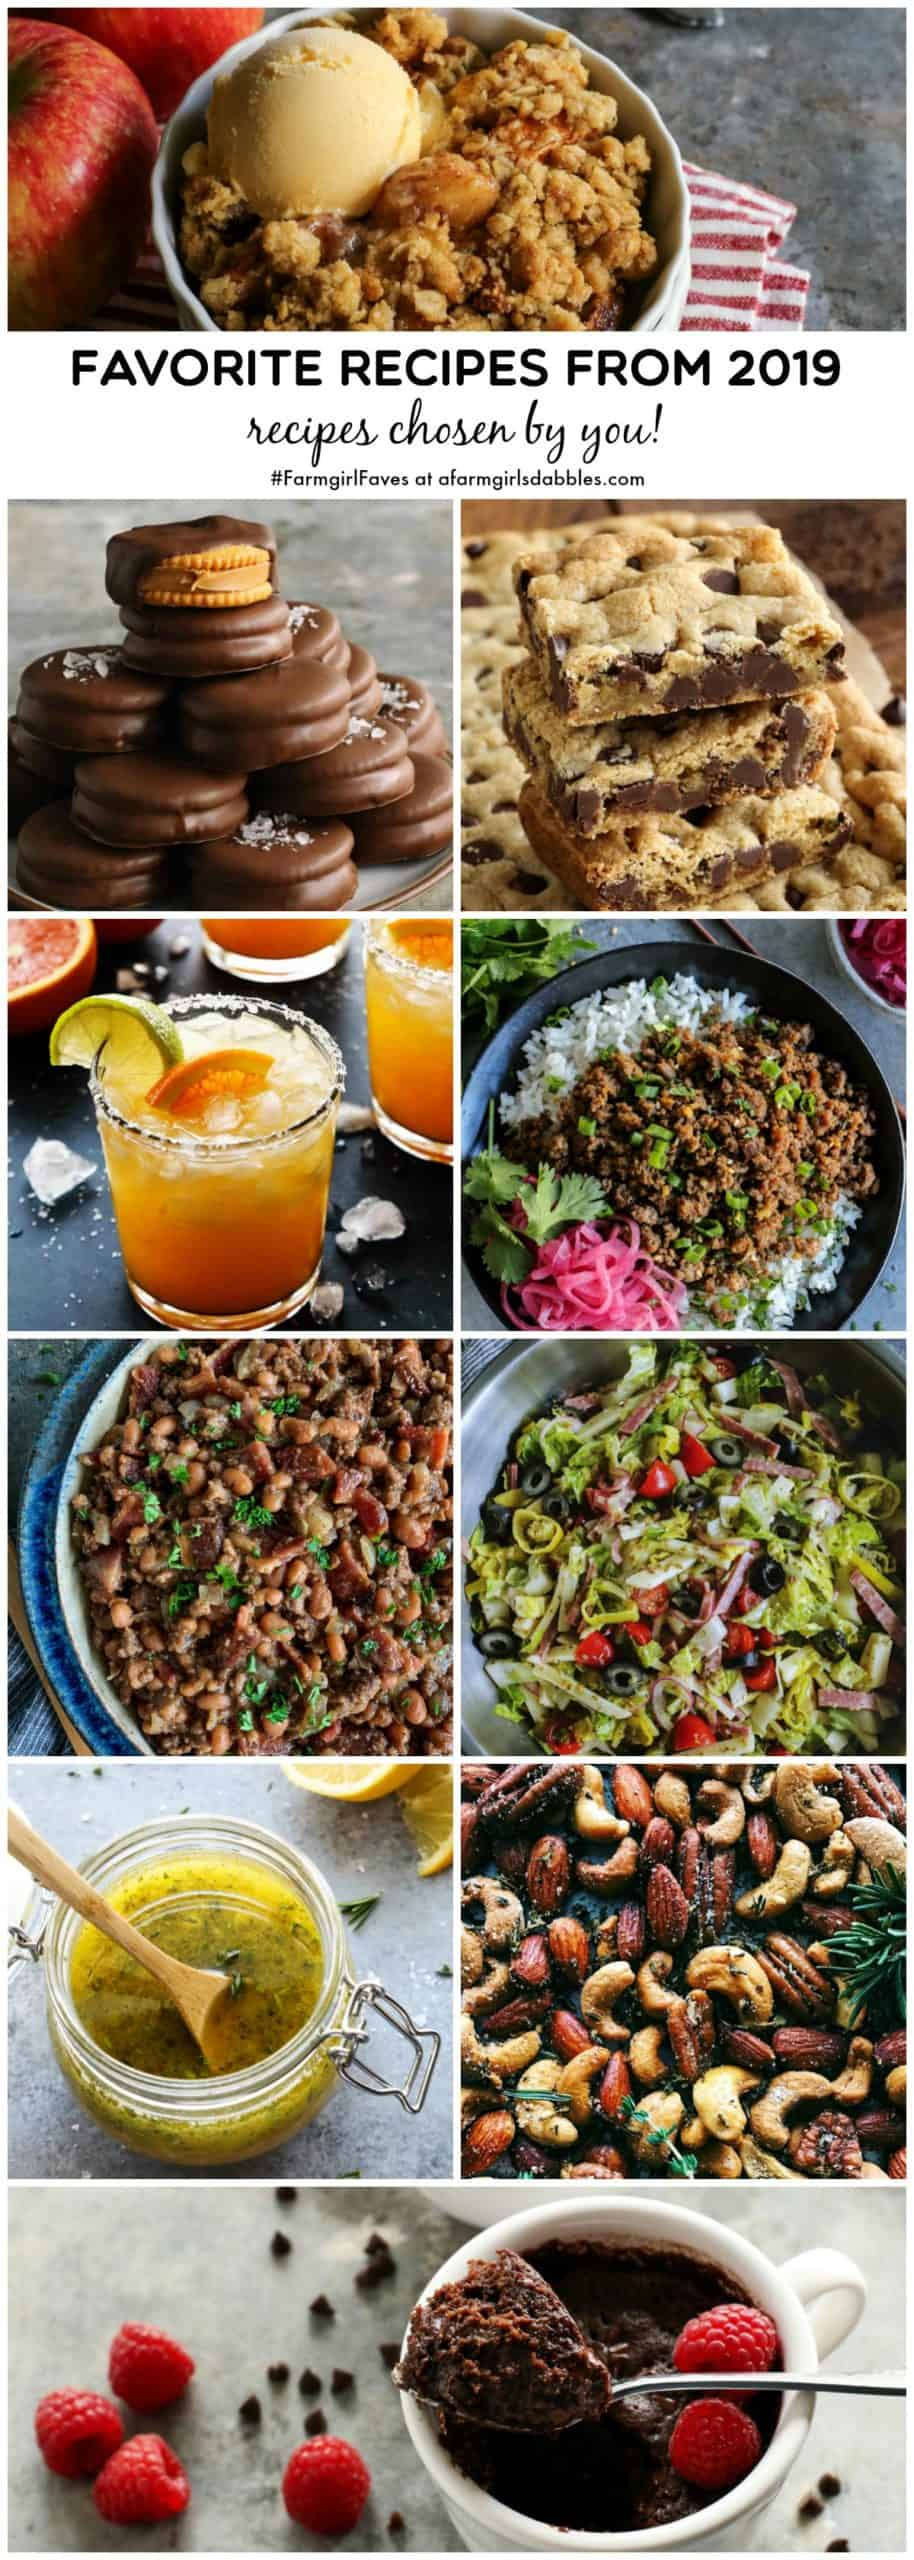 a collage of reader favorite recipes